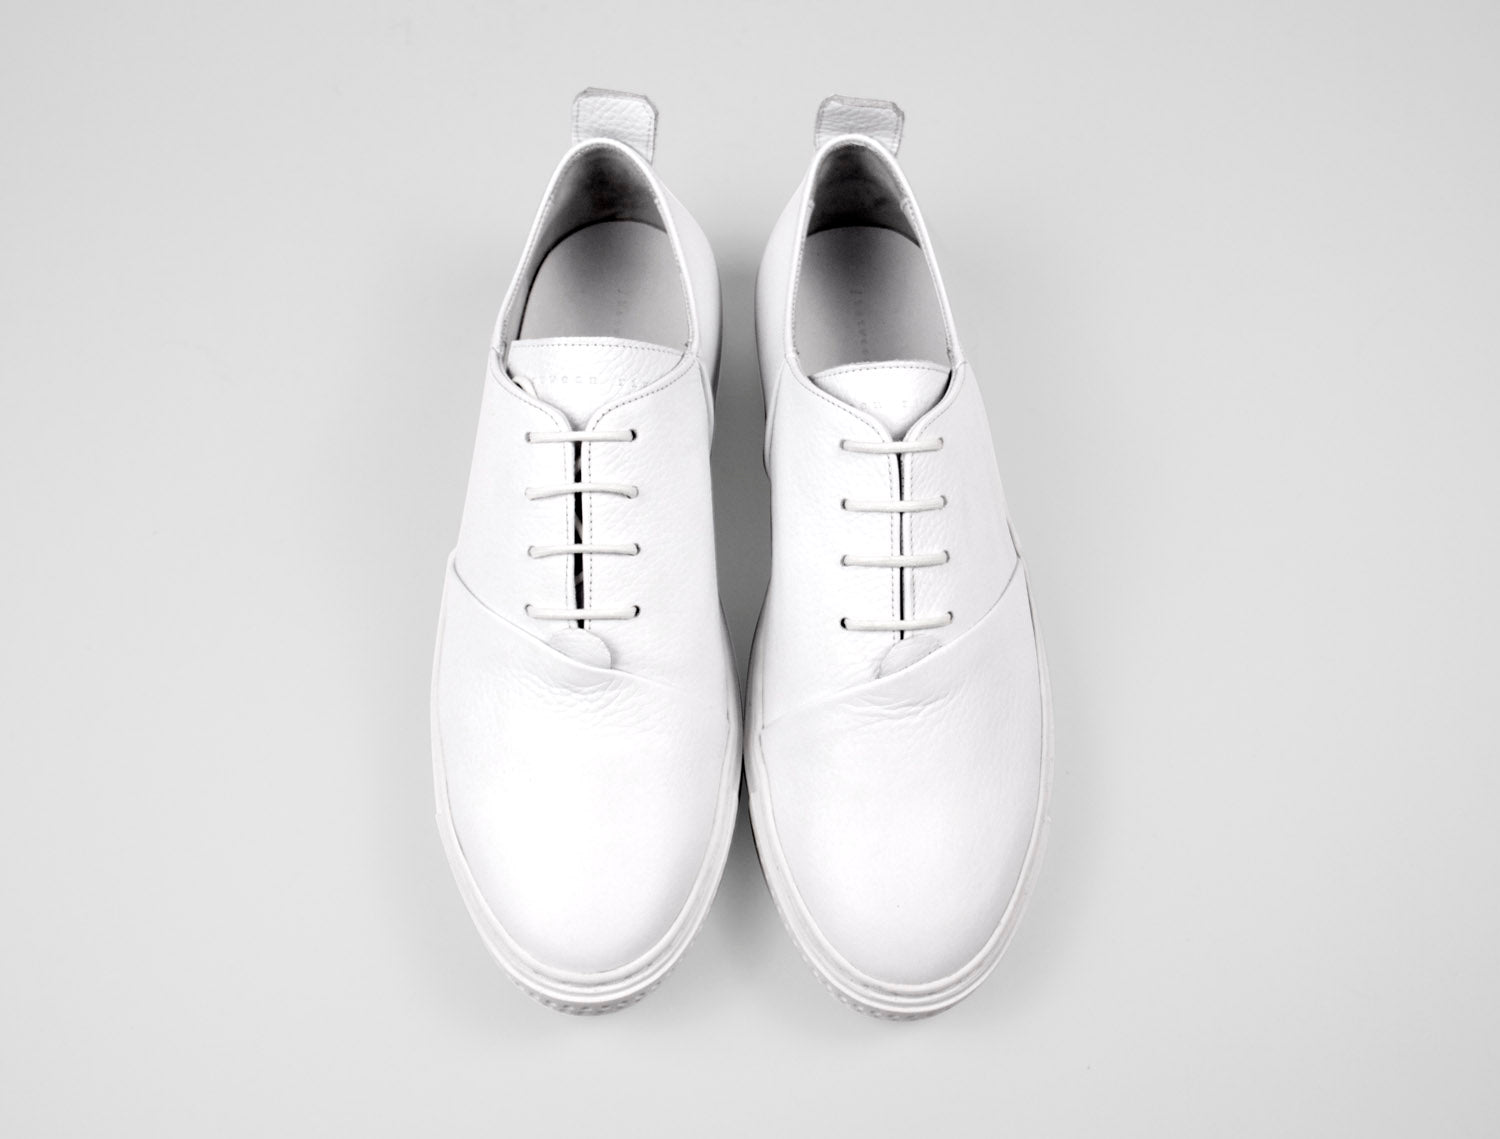 Womens Low Top Trainer in White Tumbled Leather